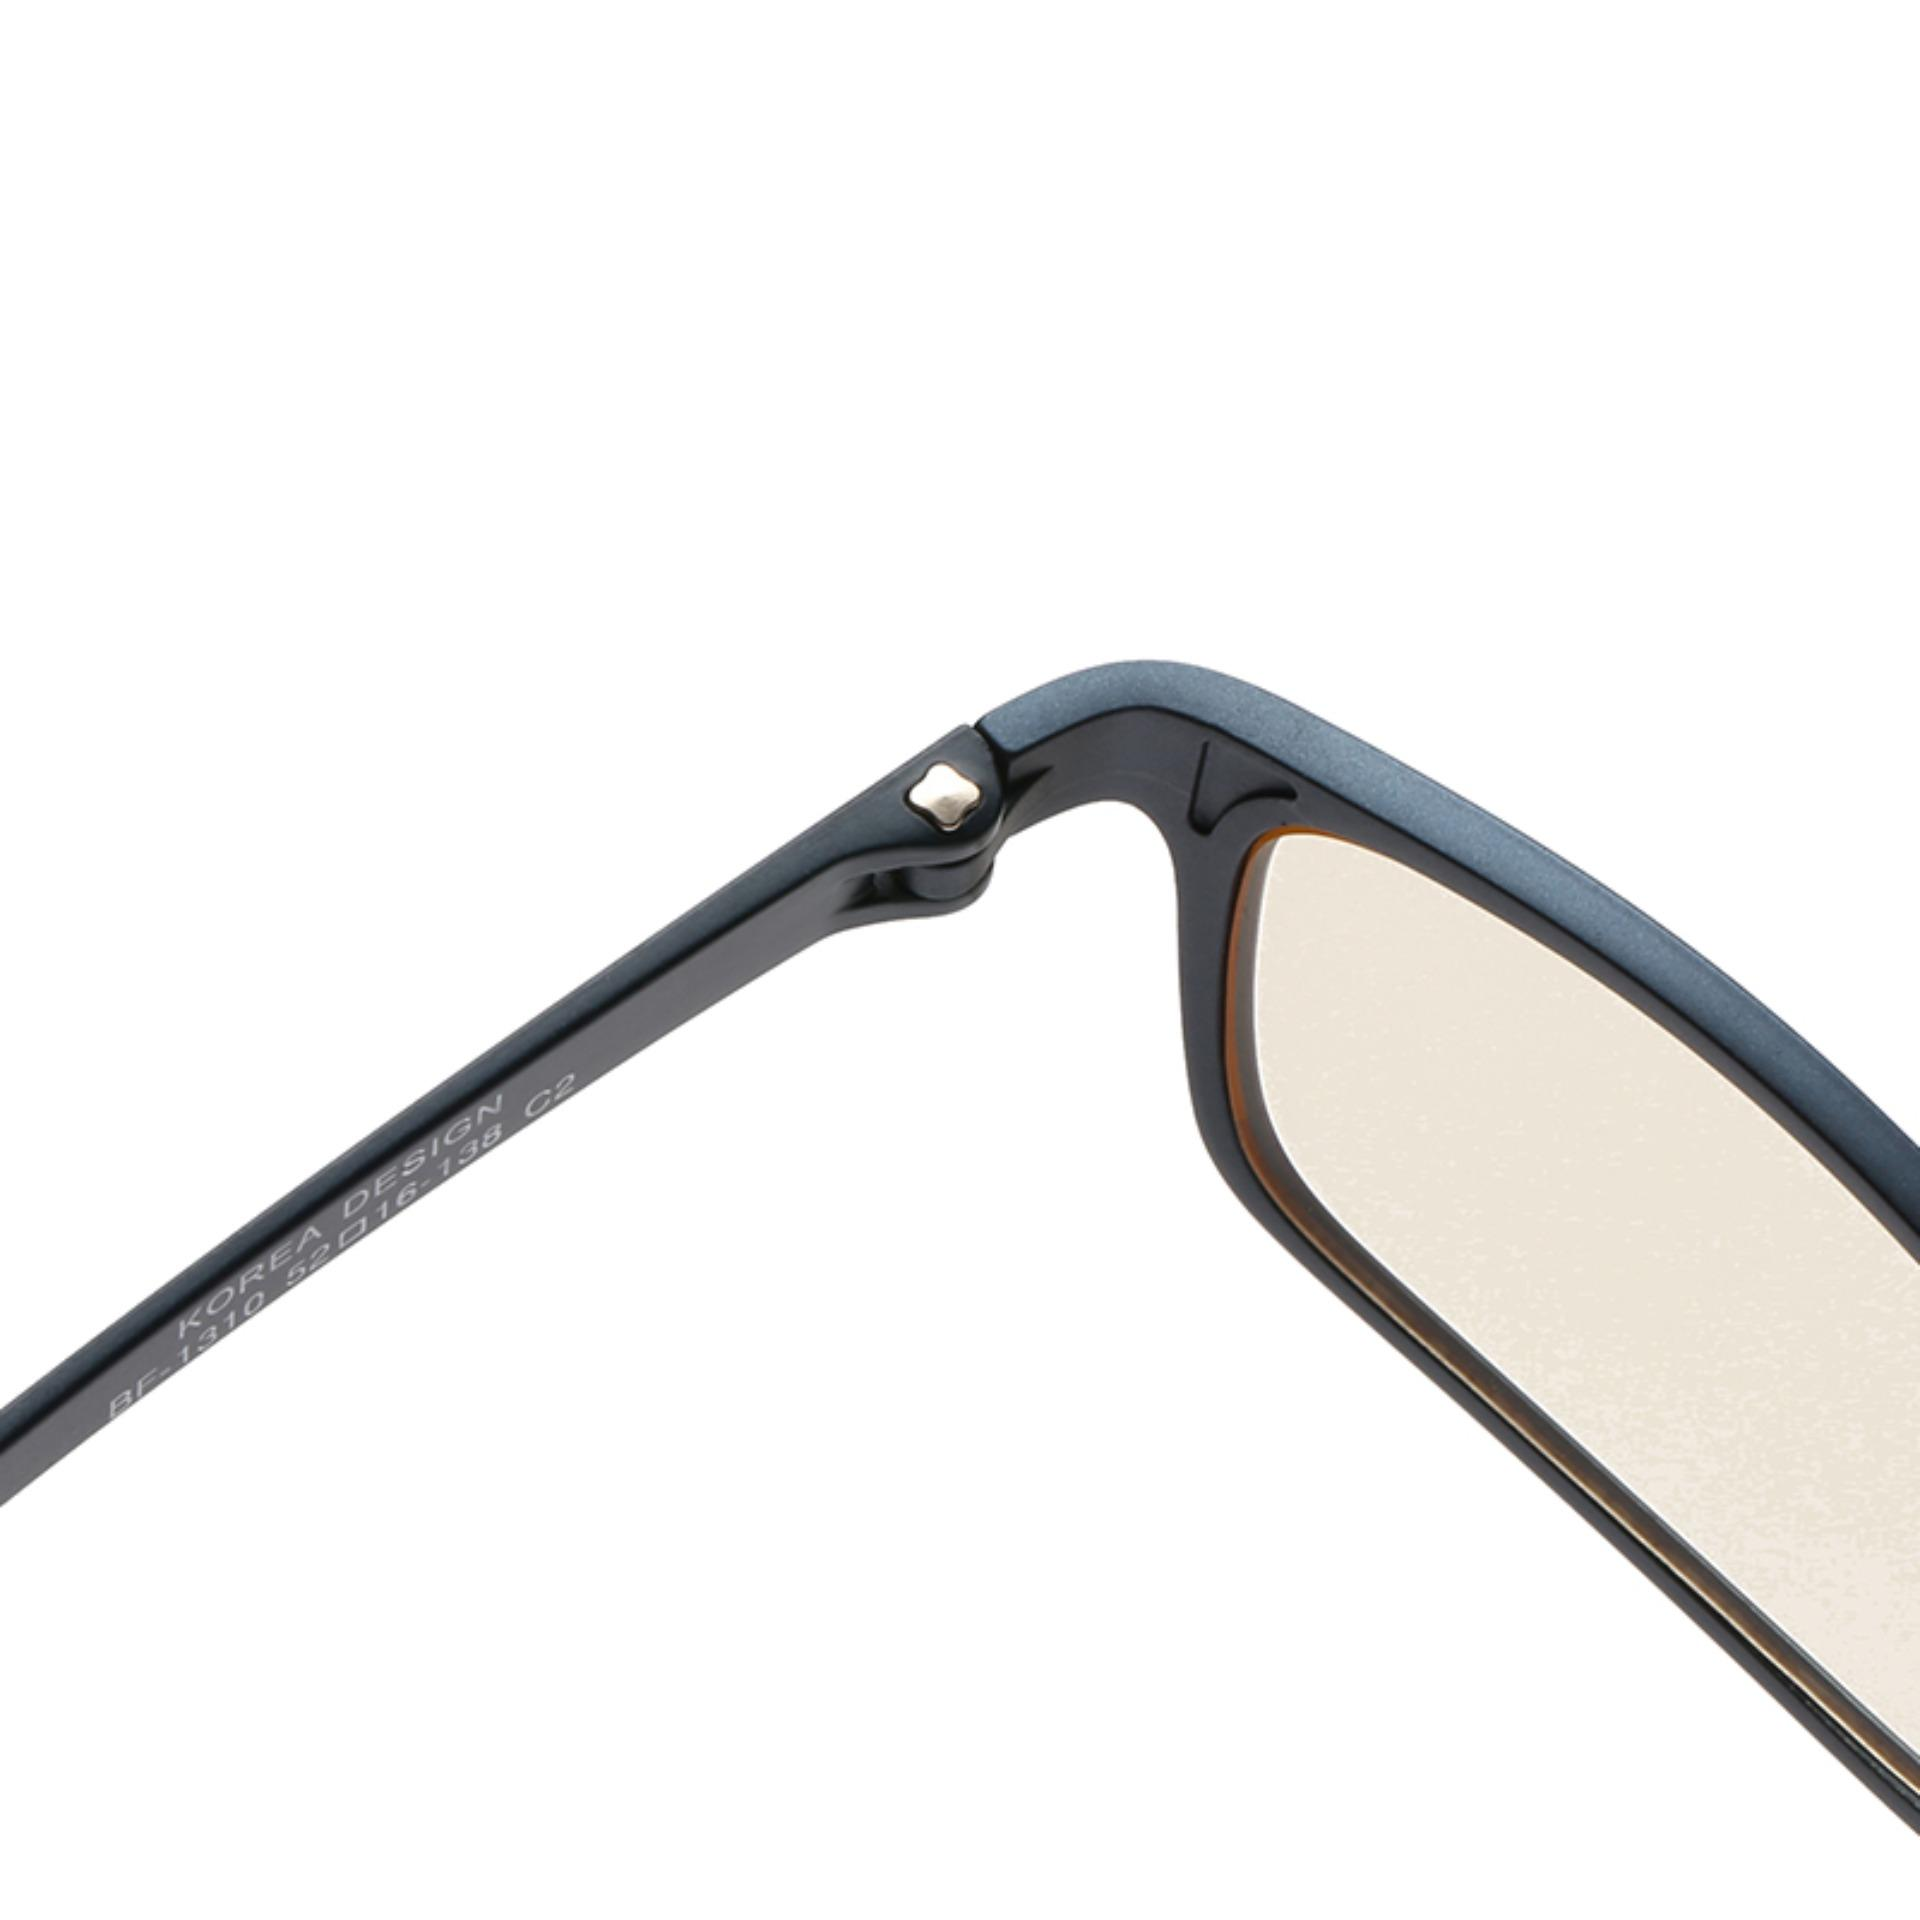 ... Buy 1 Get 1 Freebie. Source · KATELUO Computer Goggle Anti Blue Laser Fatigue Radiation-resistant Reading Glasses Frame Eyeglasses 1310 |